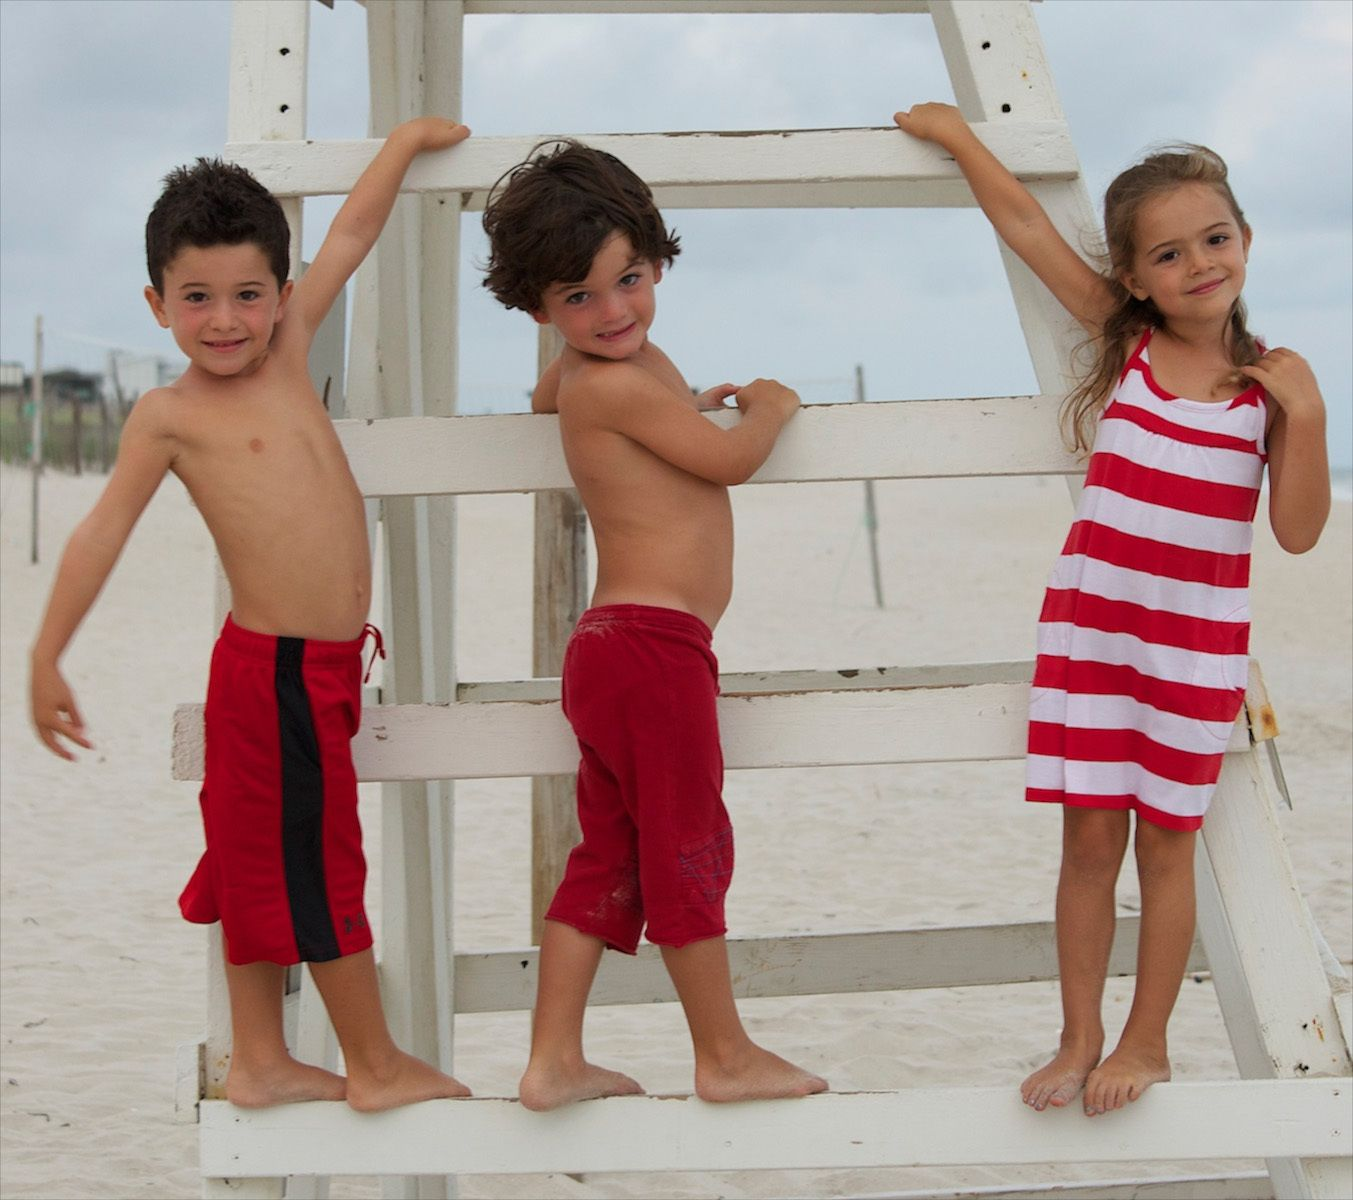 children at the beach images